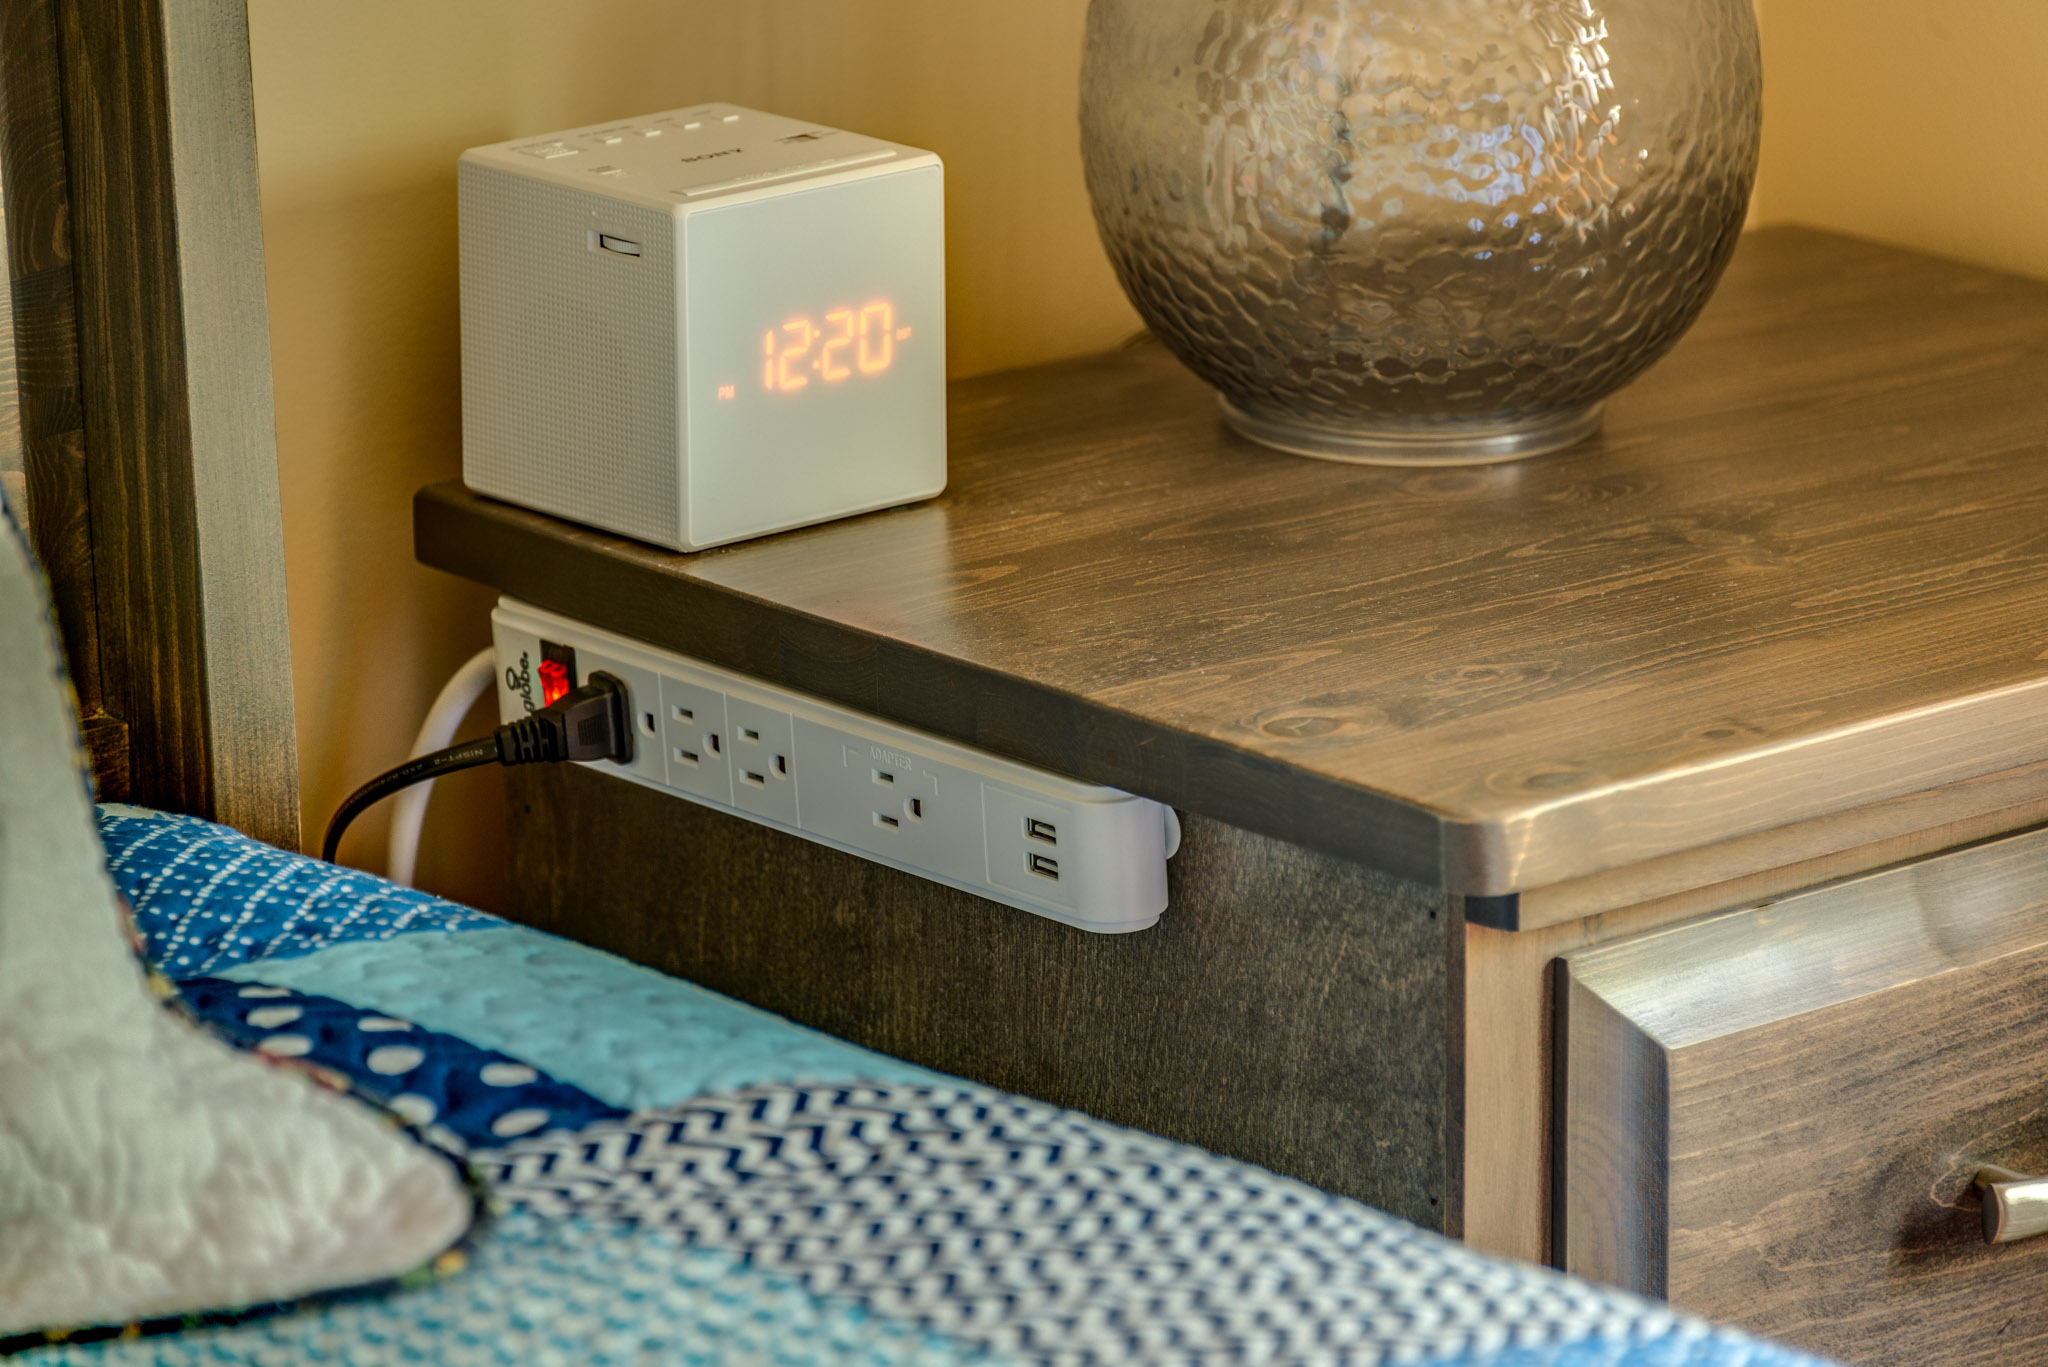 Bedside USB and 120V outlets